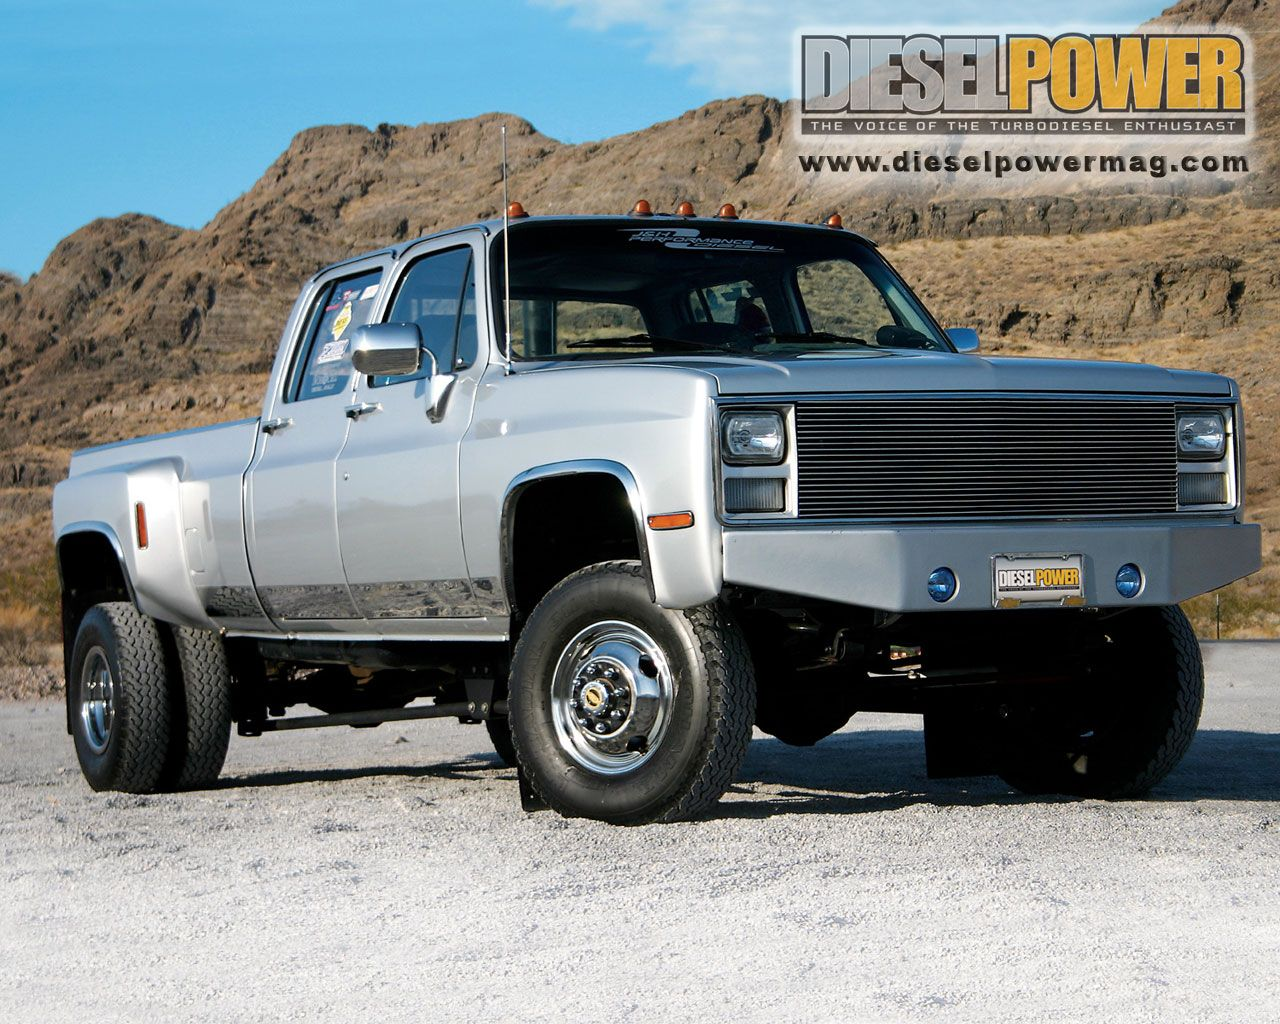 hight resolution of 1980 chevy silverado dually 4x4 6 6l duramax diesel 6 speed manual trans 31 to 33 tires